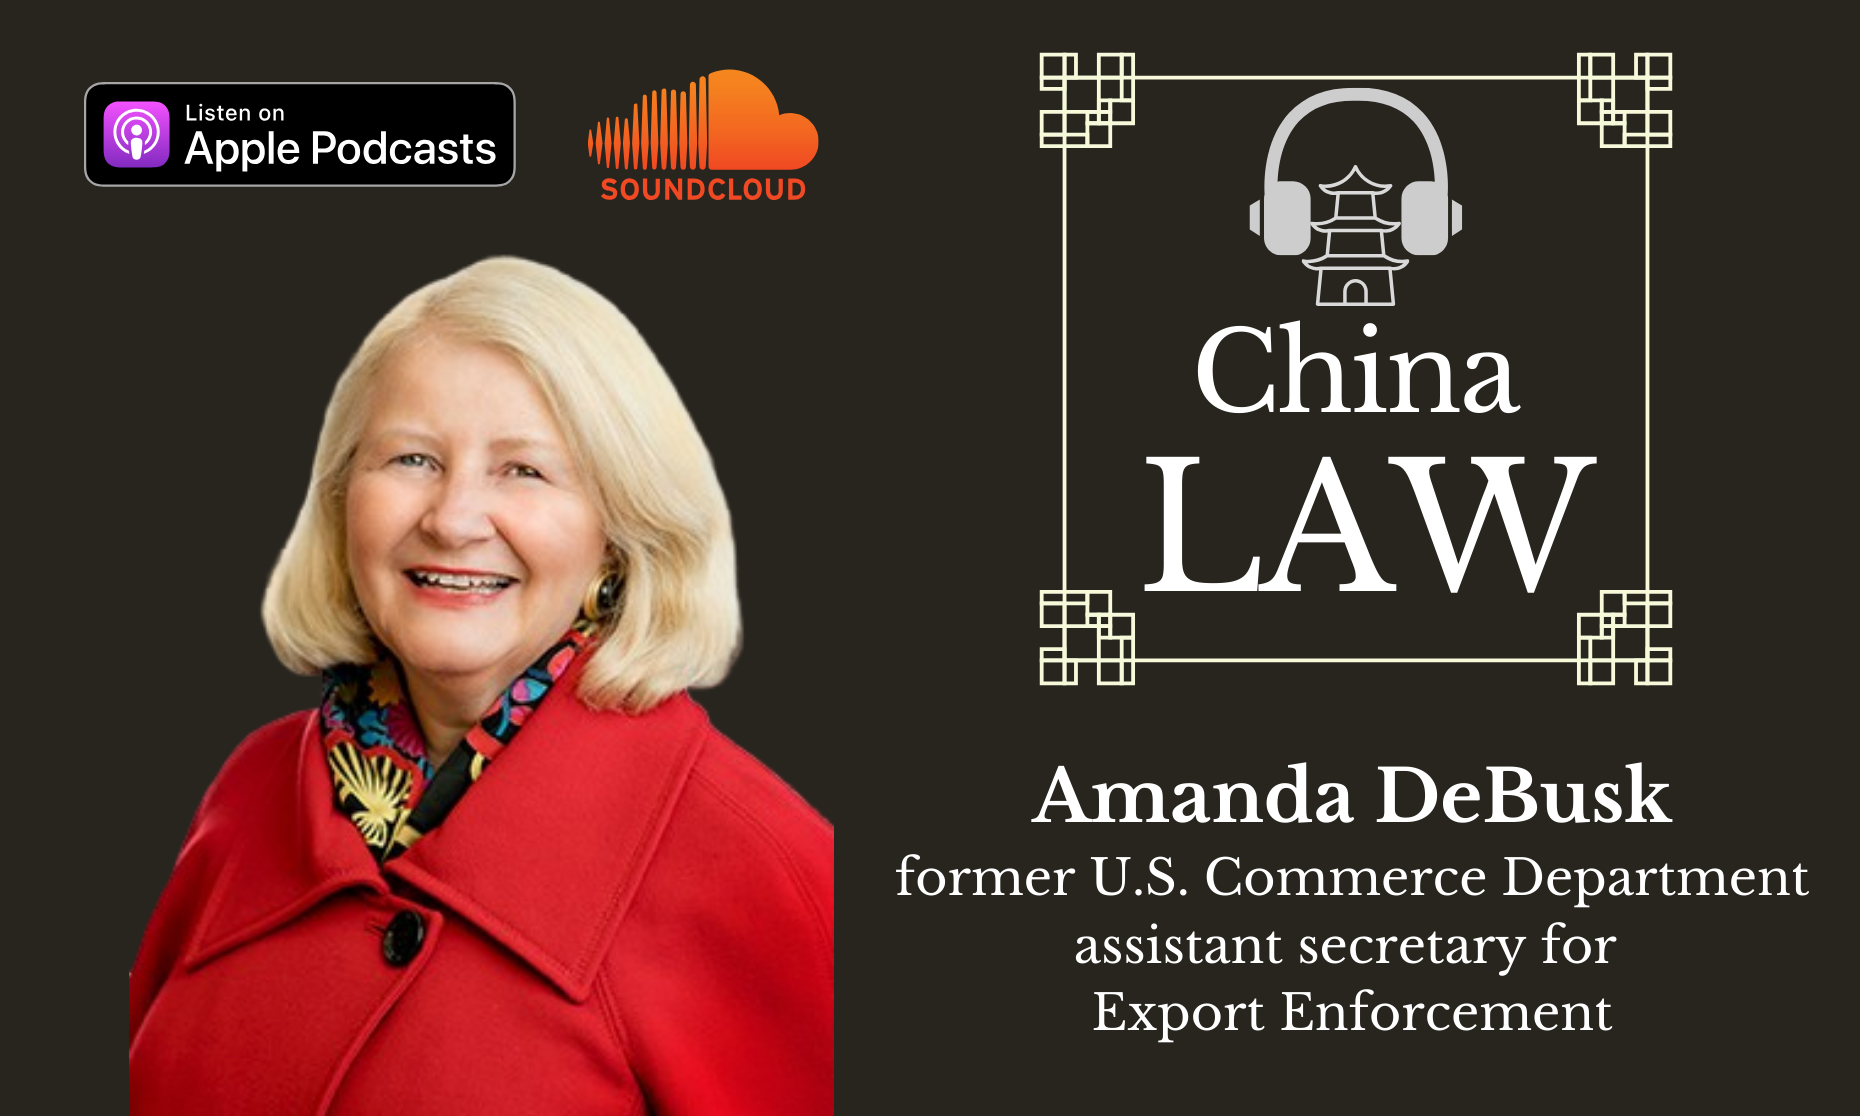 Podcast #5: Discussing new US Controls on Tech Exports to China with Amanda DeBusk, Former Commerce Department Official